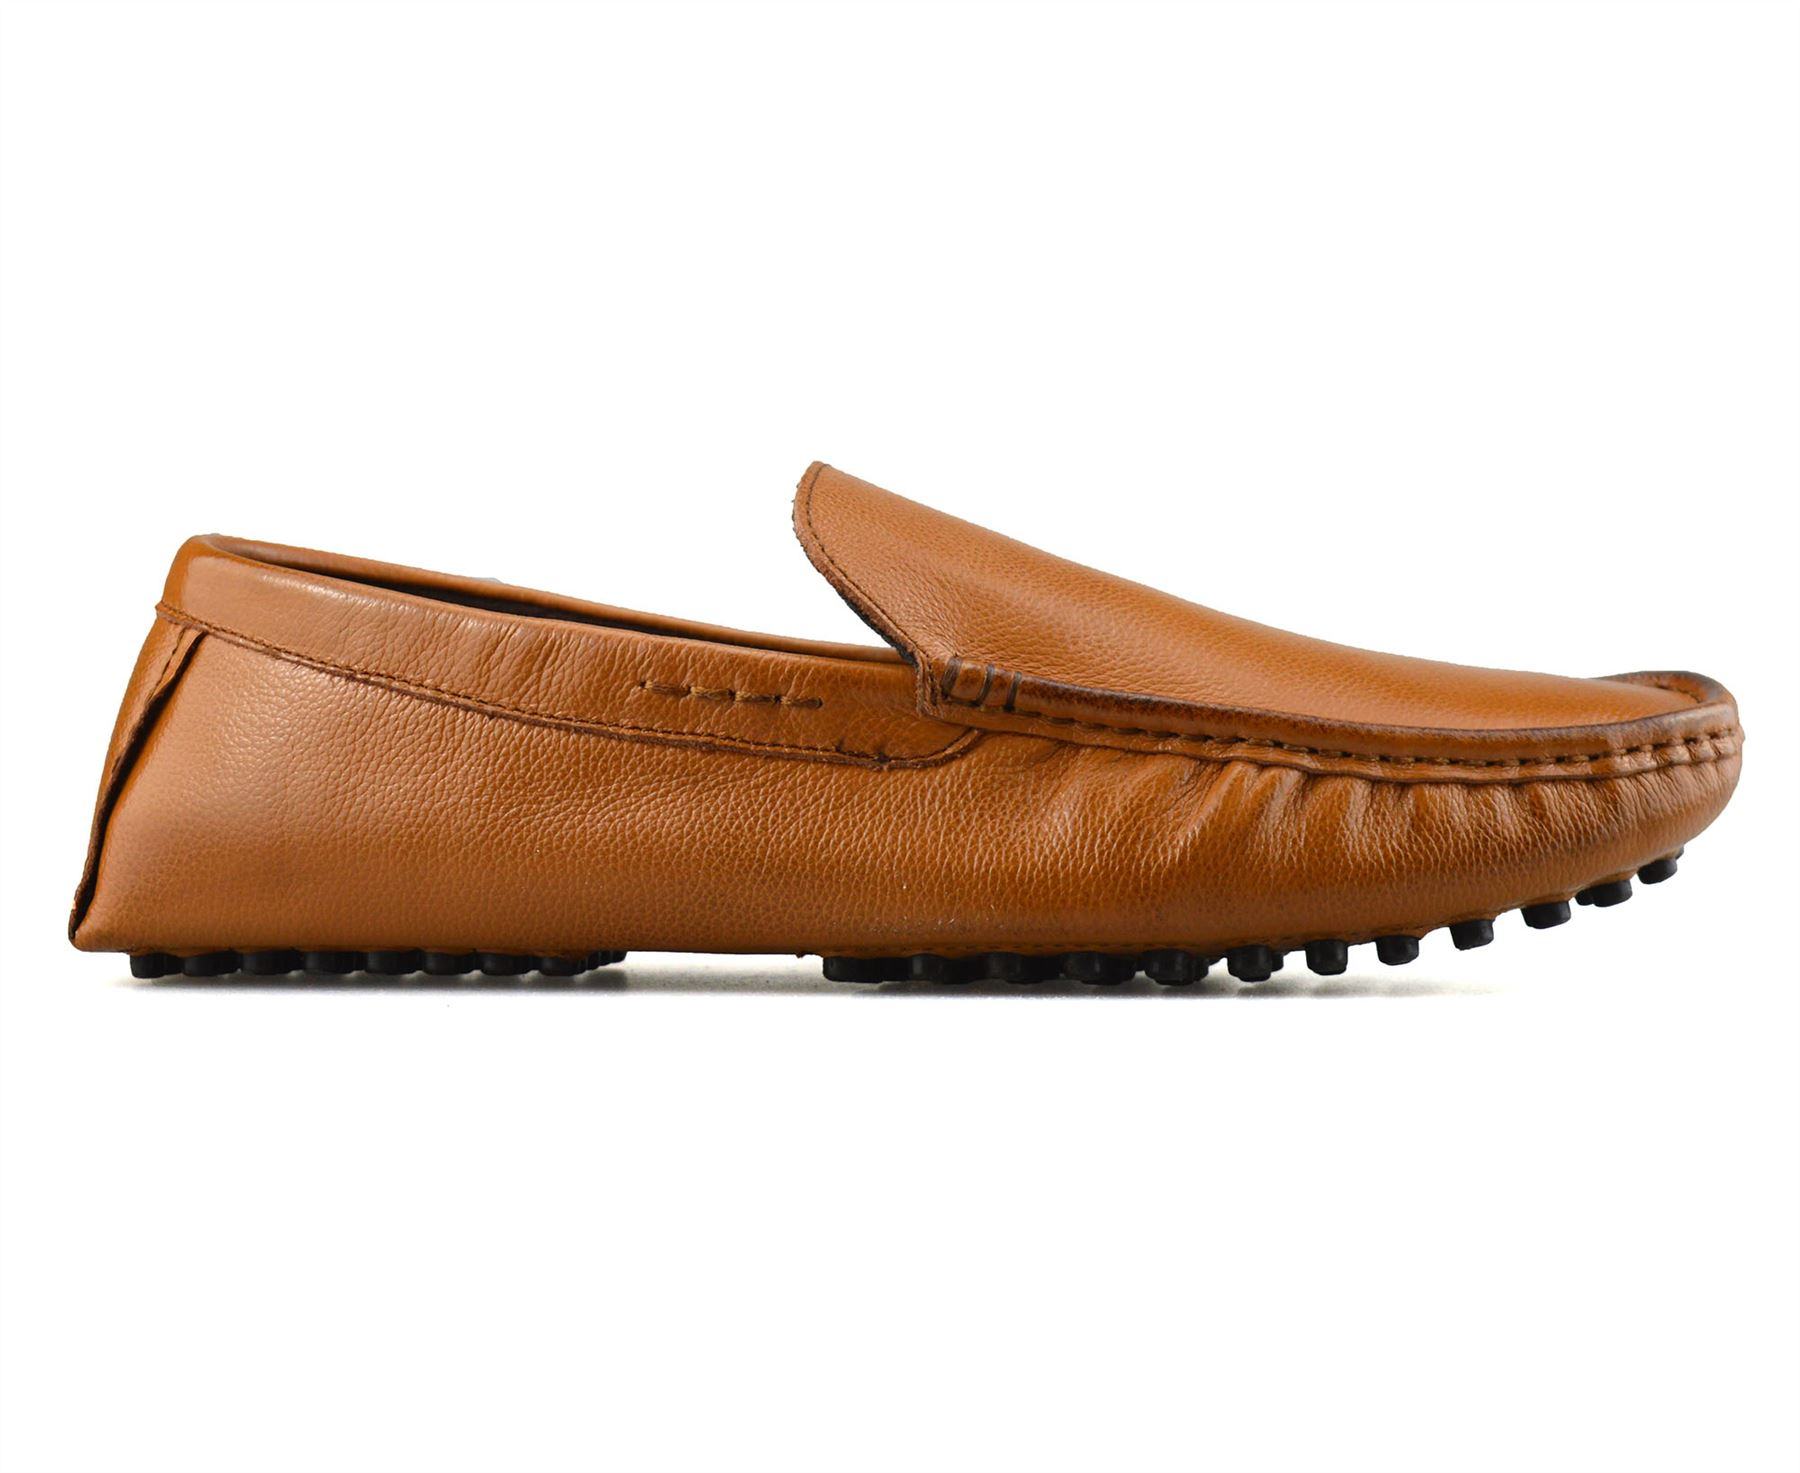 Mens-Leather-Slip-On-Casual-Smart-Loafers-Mocassin-Designer-Driving-Shoes-Size thumbnail 11